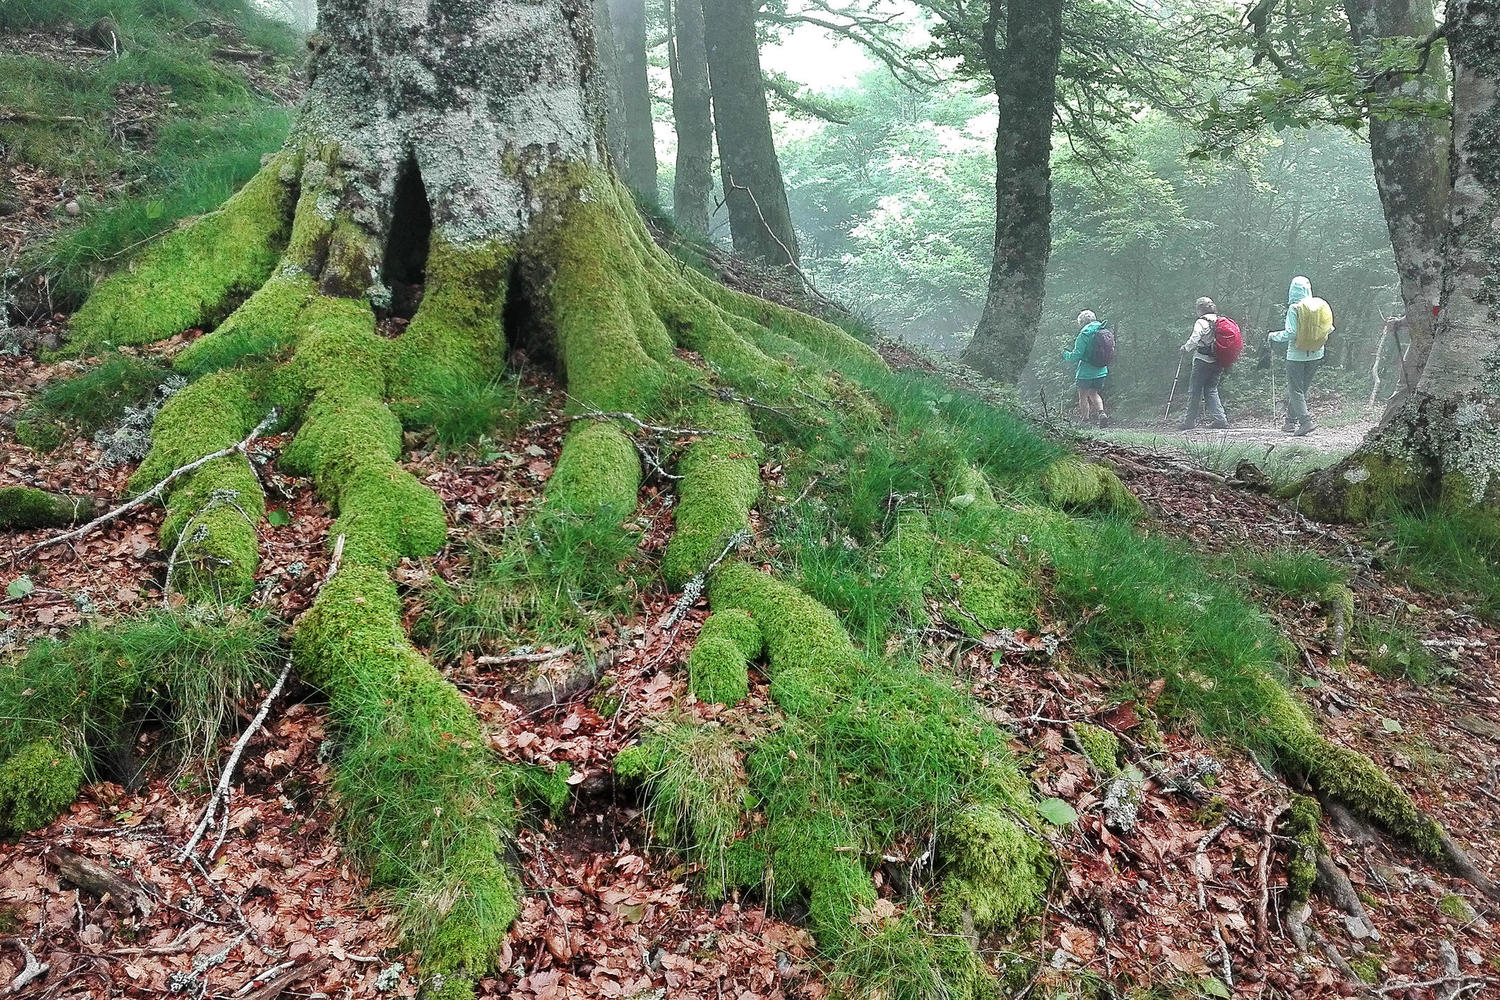 spain-navarre-camino-roncesvalles-beech-forest-hikers